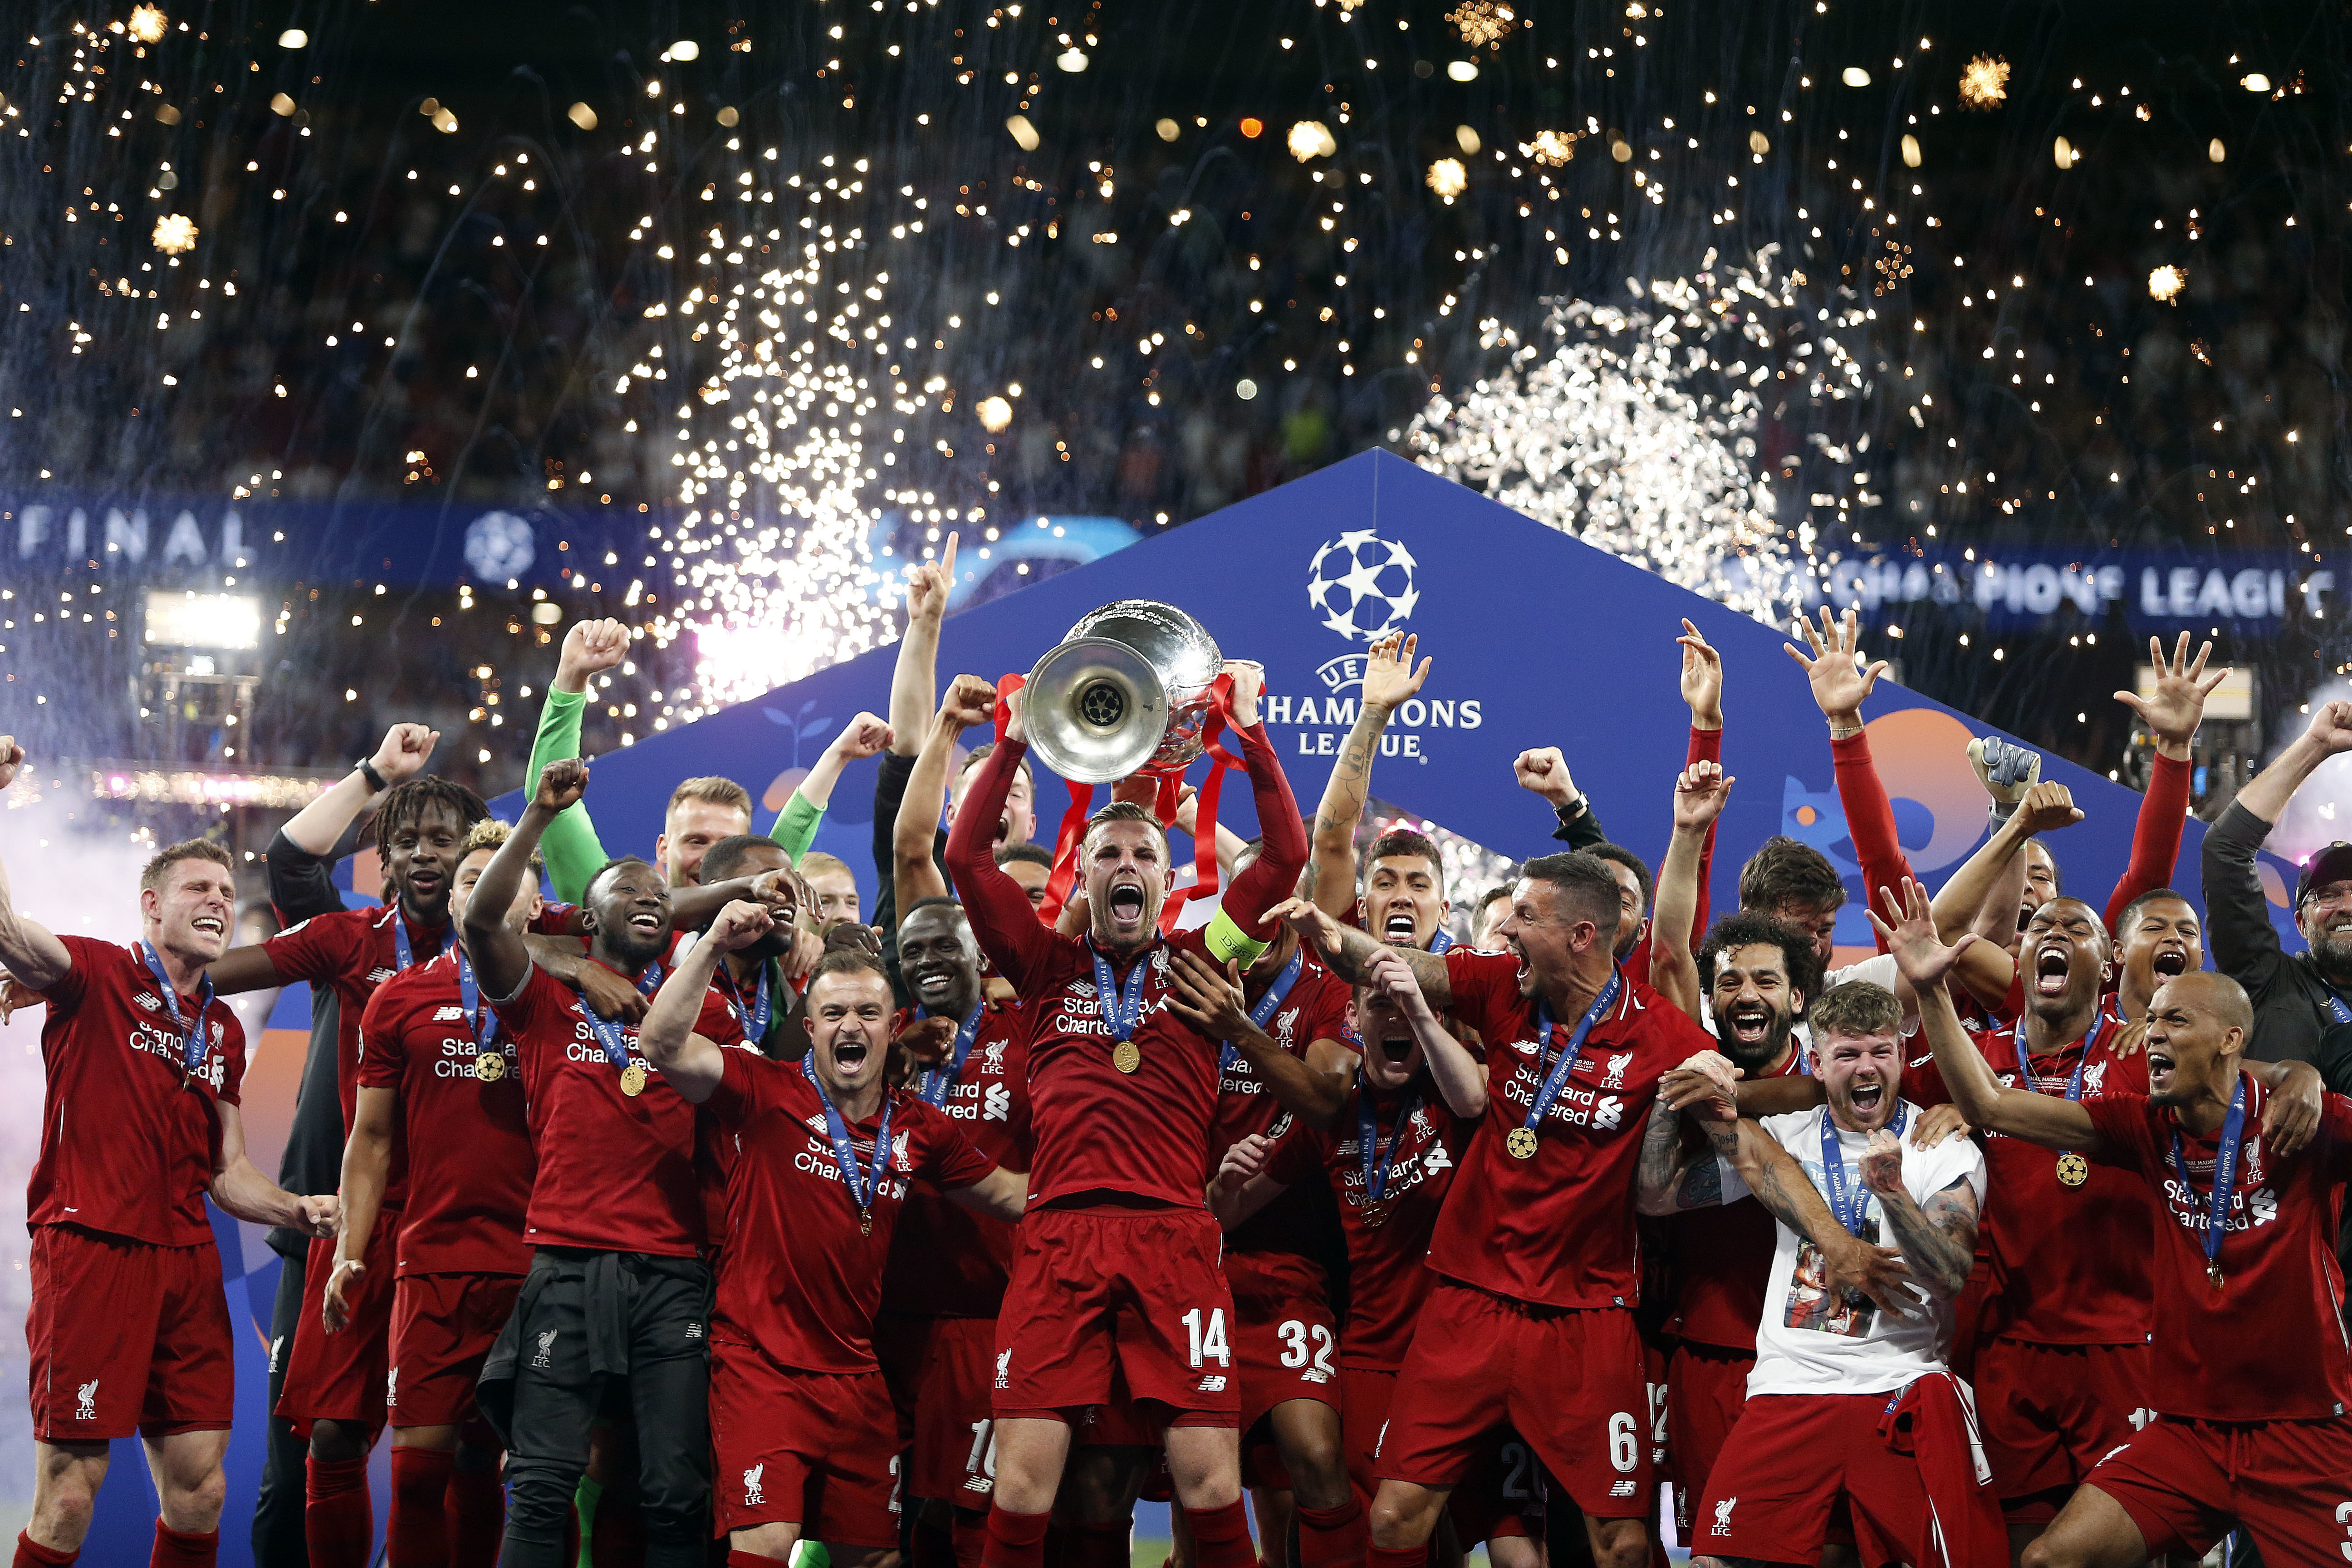 Liverpool won their sixth Champions League in Madrid last season and 42nd major honour